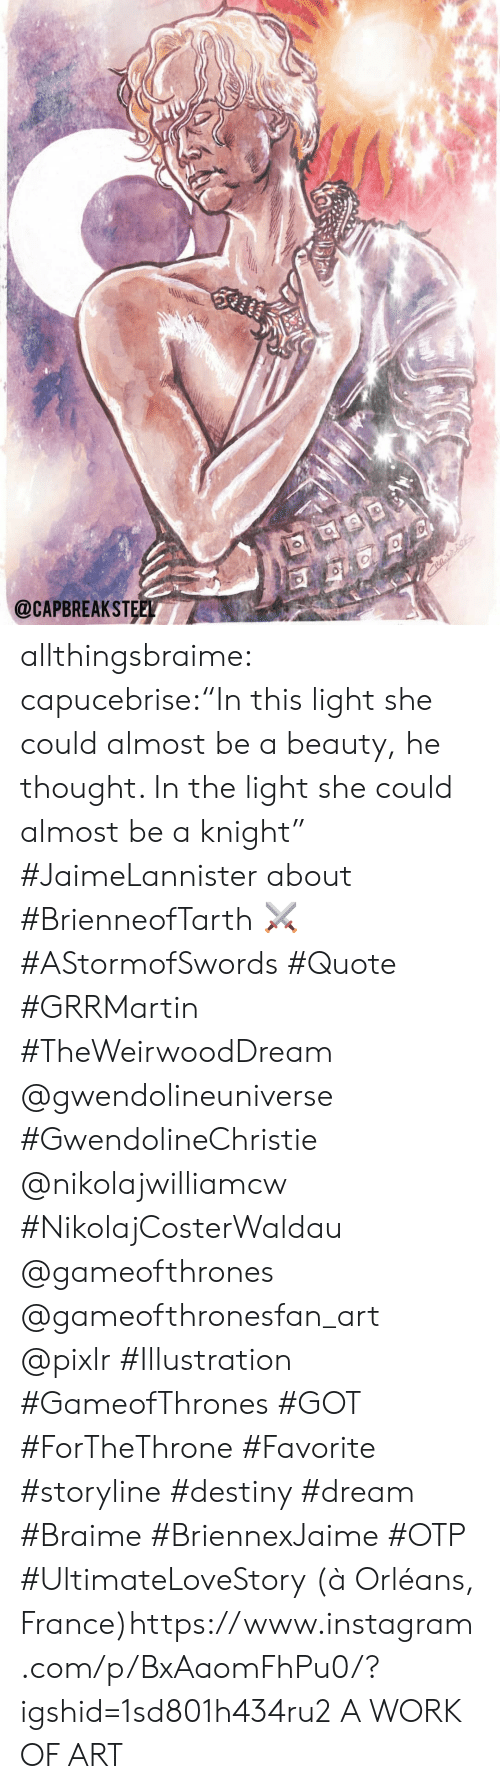 "Destiny, Instagram, and Tumblr: @CAPBREAKSTEEL allthingsbraime:  capucebrise:""In this light she could almost be a beauty, he thought. In the light she could almost be a knight"" #JaimeLannister about #BrienneofTarth ⚔ #AStormofSwords #Quote #GRRMartin #TheWeirwoodDream @gwendolineuniverse #GwendolineChristie @nikolajwilliamcw #NikolajCosterWaldau @gameofthrones @gameofthronesfan_art @pixlr #Illustration #GameofThrones #GOT #ForTheThrone #Favorite #storyline #destiny #dream #Braime #BriennexJaime #OTP #UltimateLoveStory  (à Orléans, France)https://www.instagram.com/p/BxAaomFhPu0/?igshid=1sd801h434ru2  A WORK OF ART"